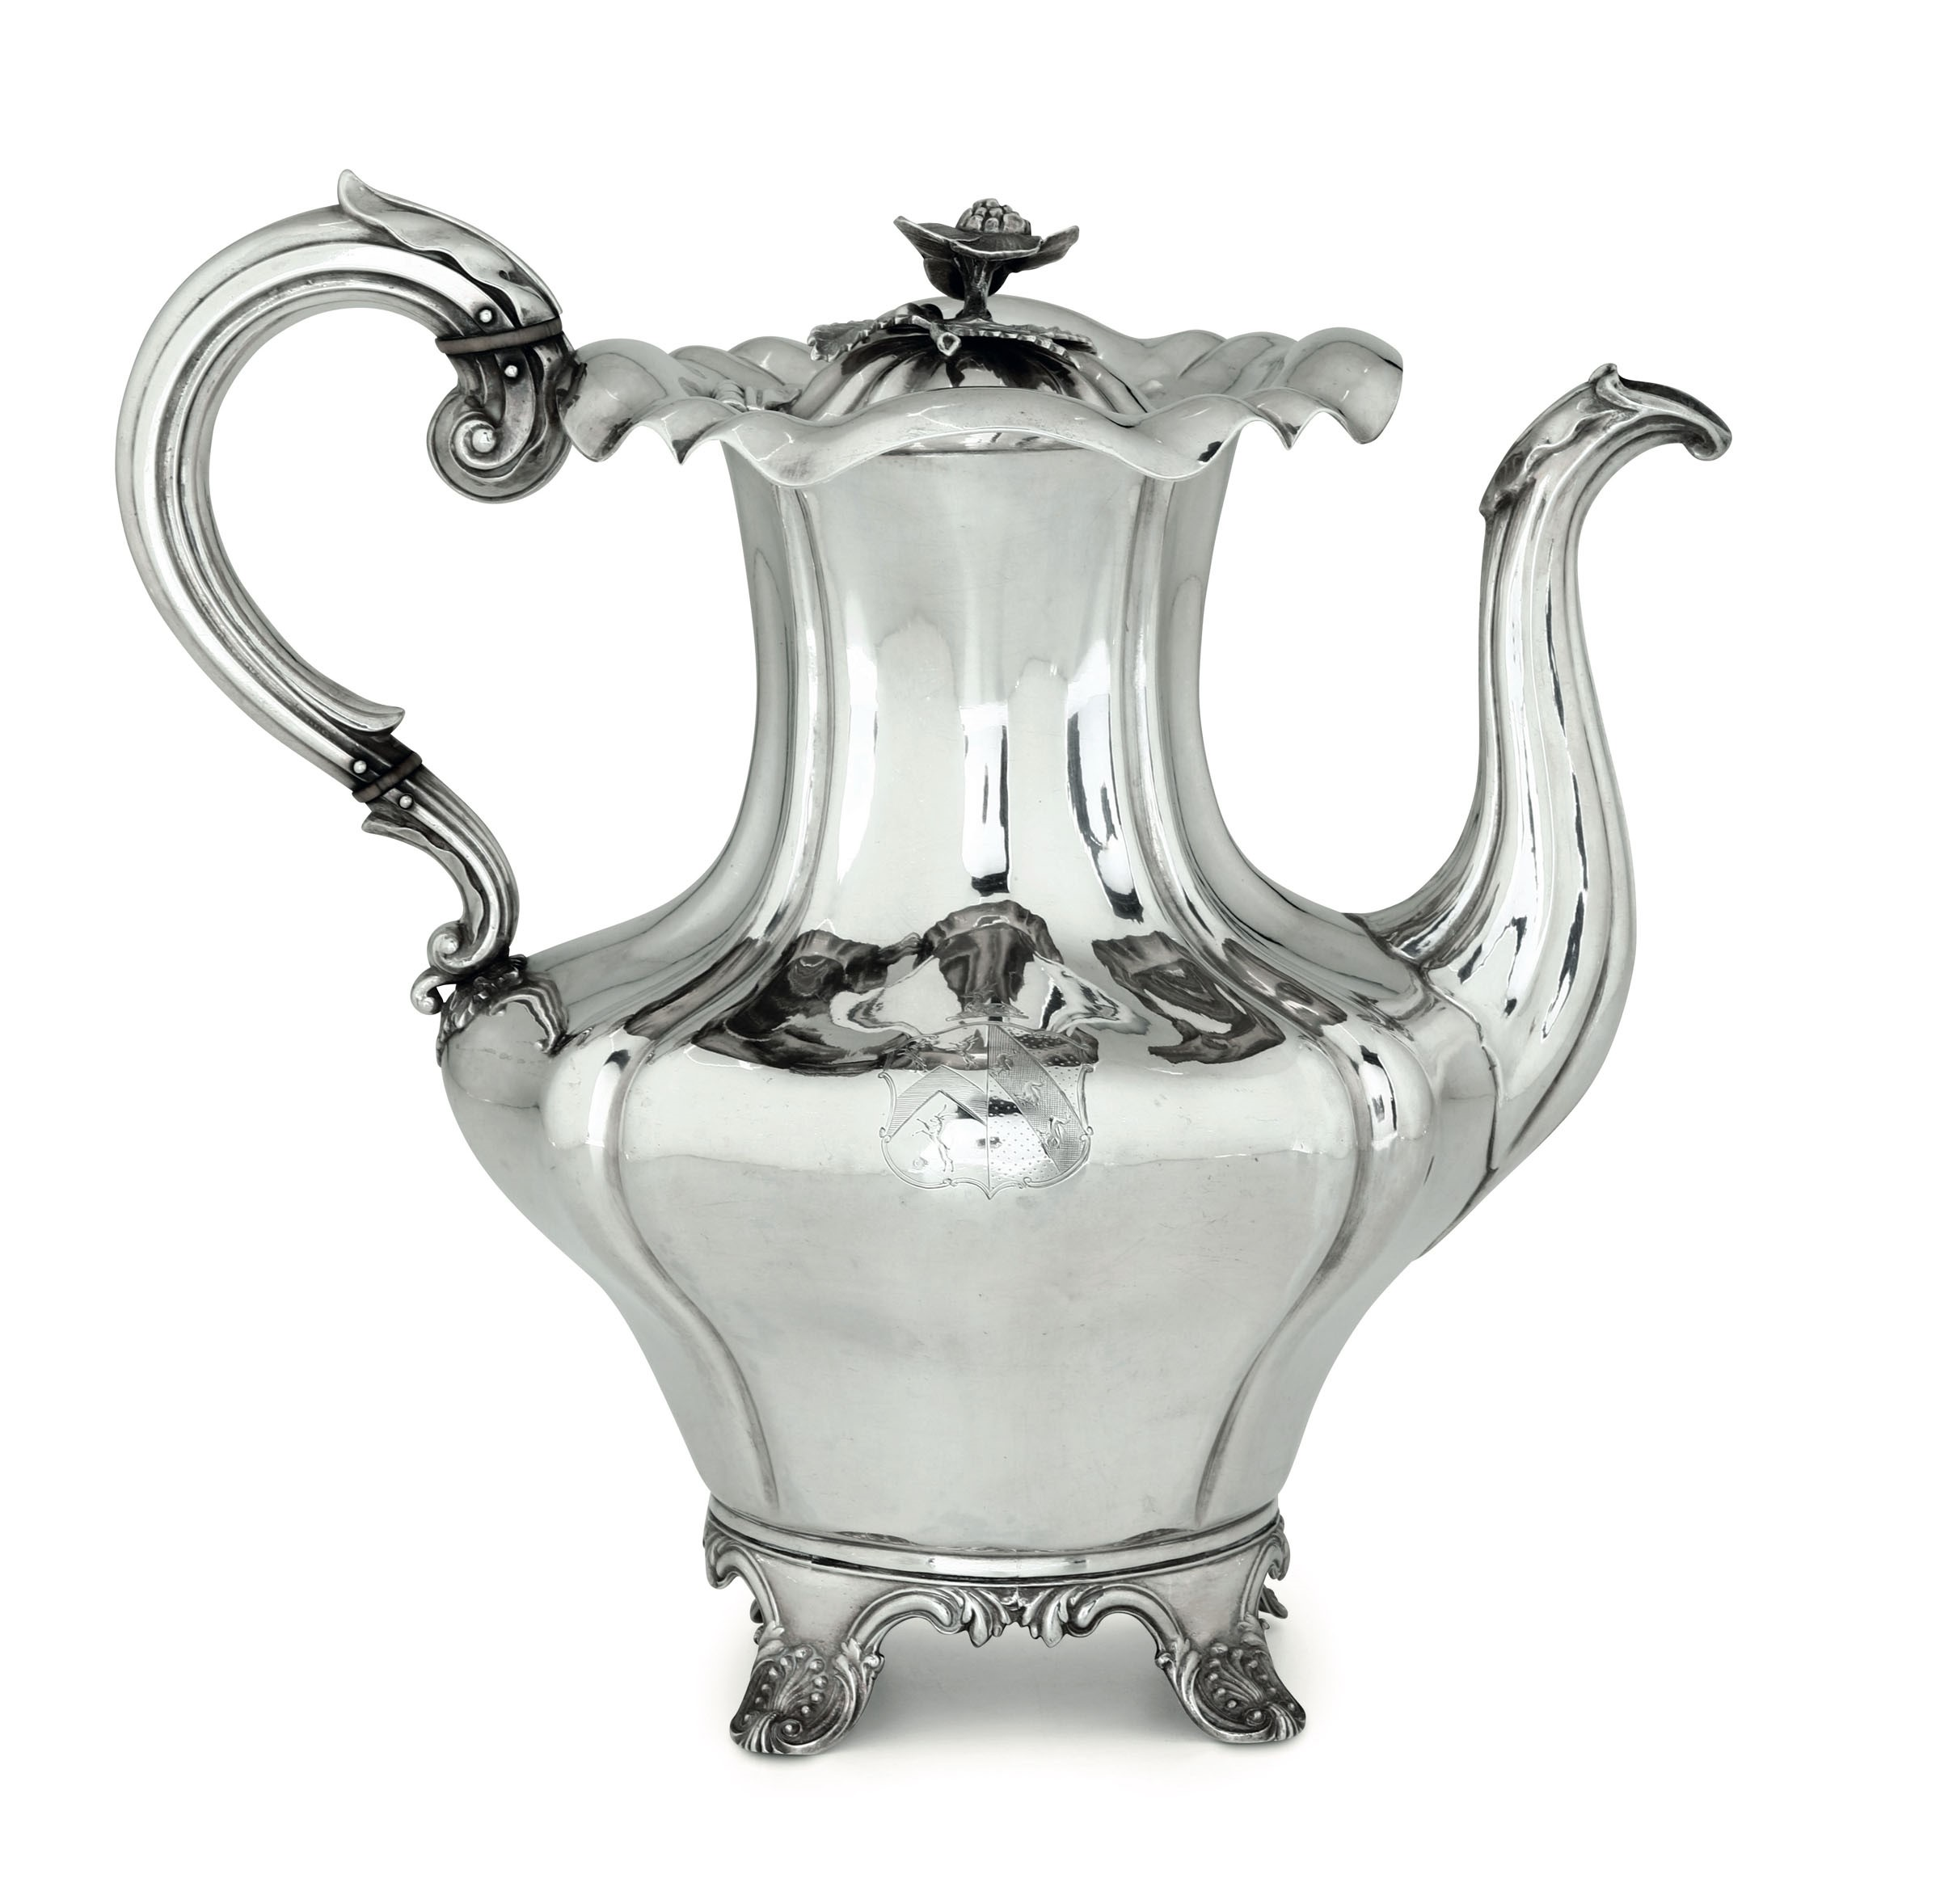 Lot 16 - A silver coffee pot, London, 1835 - Molten, embossed and chiselled silver. Worn [...]